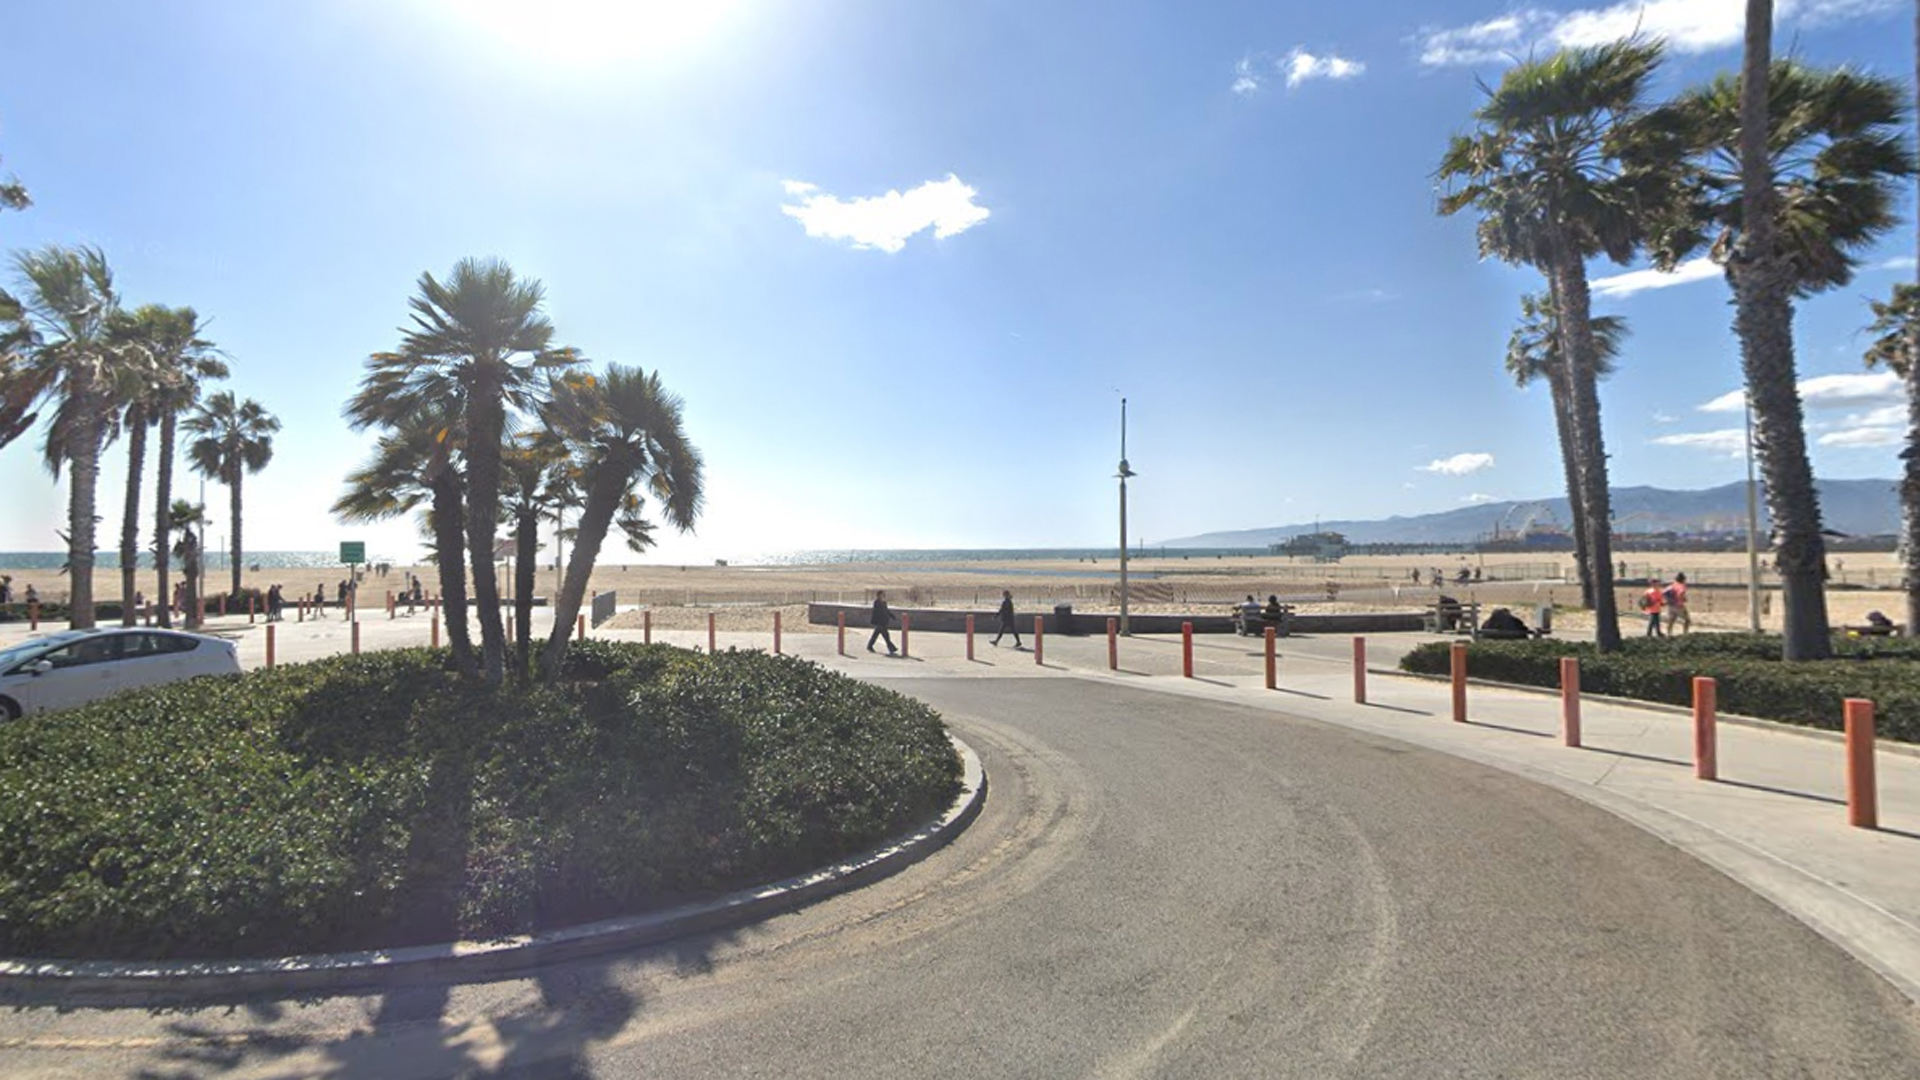 Bay Street near the beach in Santa Monica is seen in this image from Google Maps.